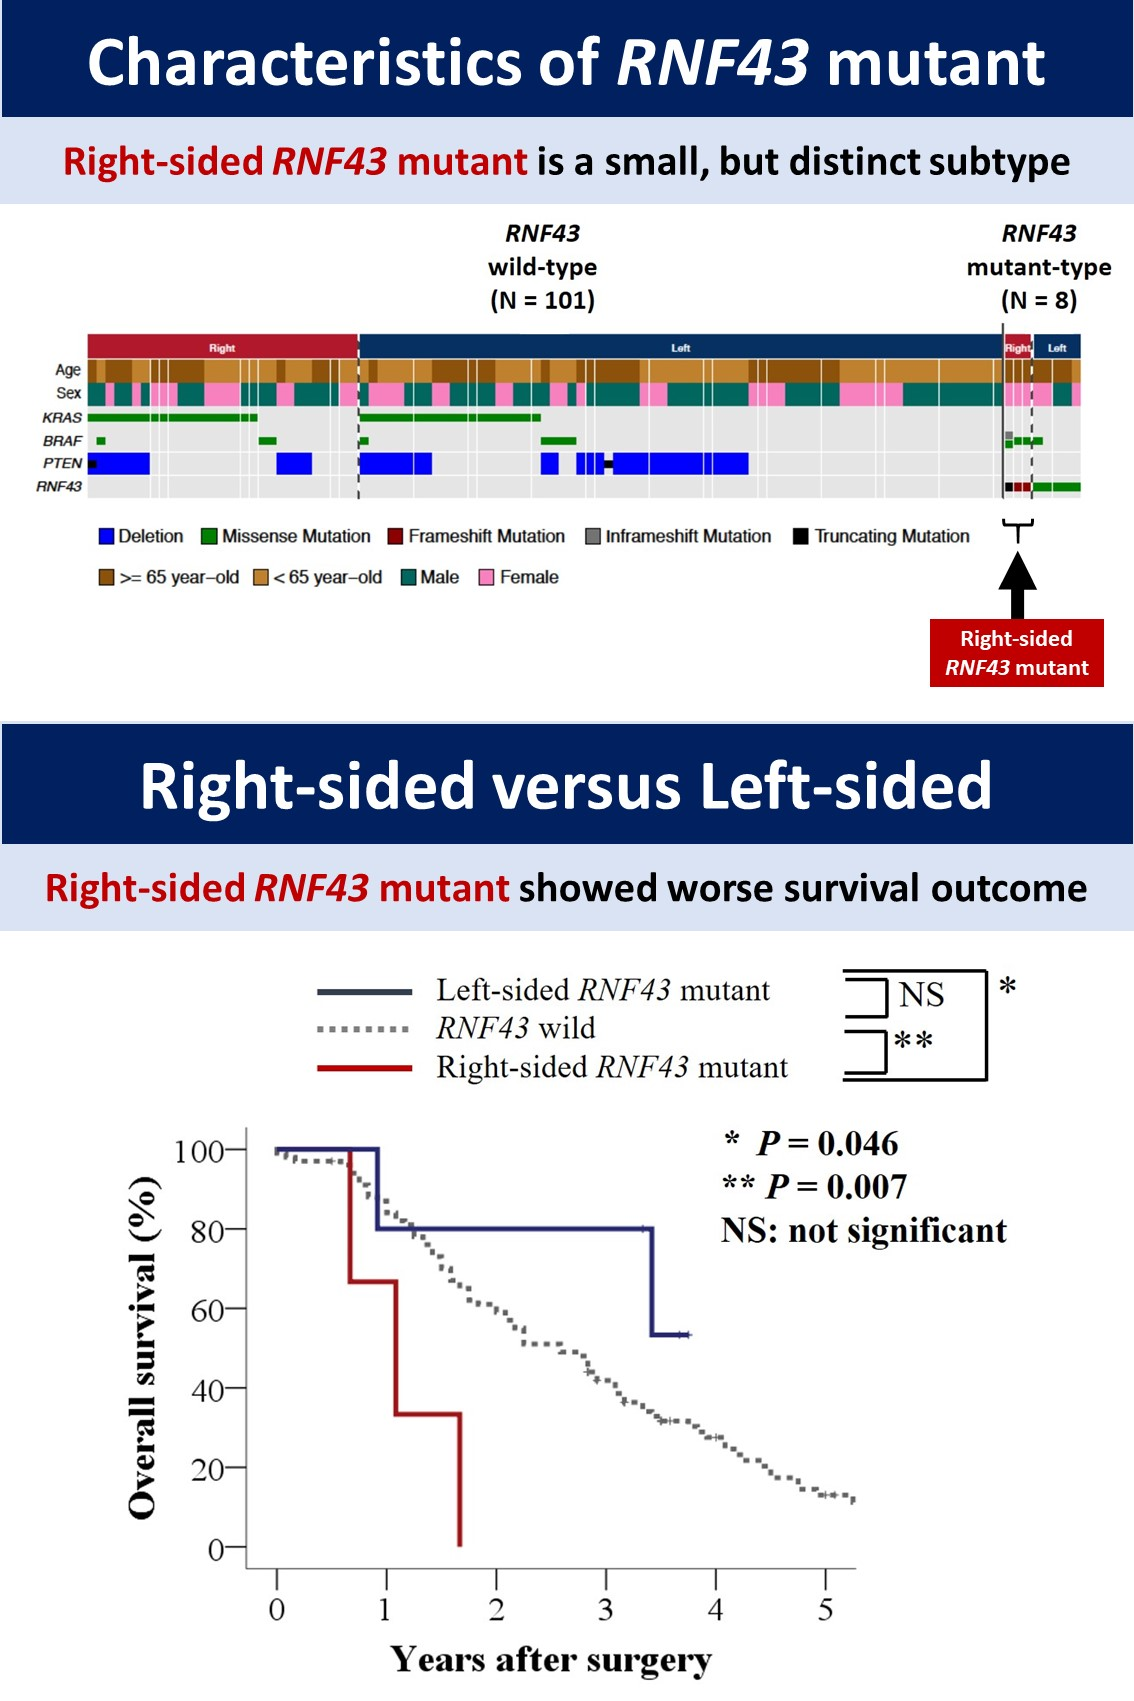 69 05 Survival Outcome Of Rnf43 Mutant Type Differs Between Right Sided And Left Sided Colorectal Cancer Academic Surgical Congress Abstracts Archive